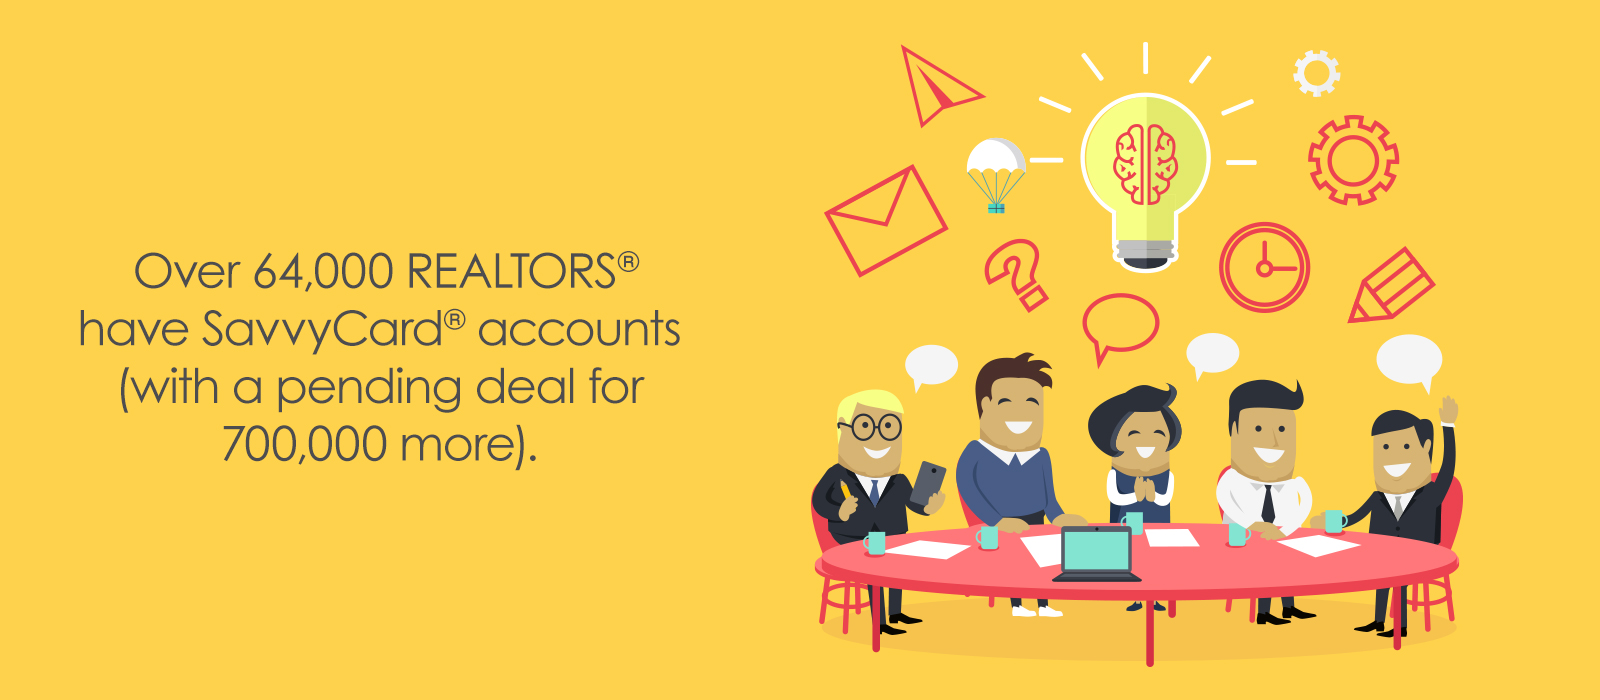 REALTORS love SavvyCard for growing their business